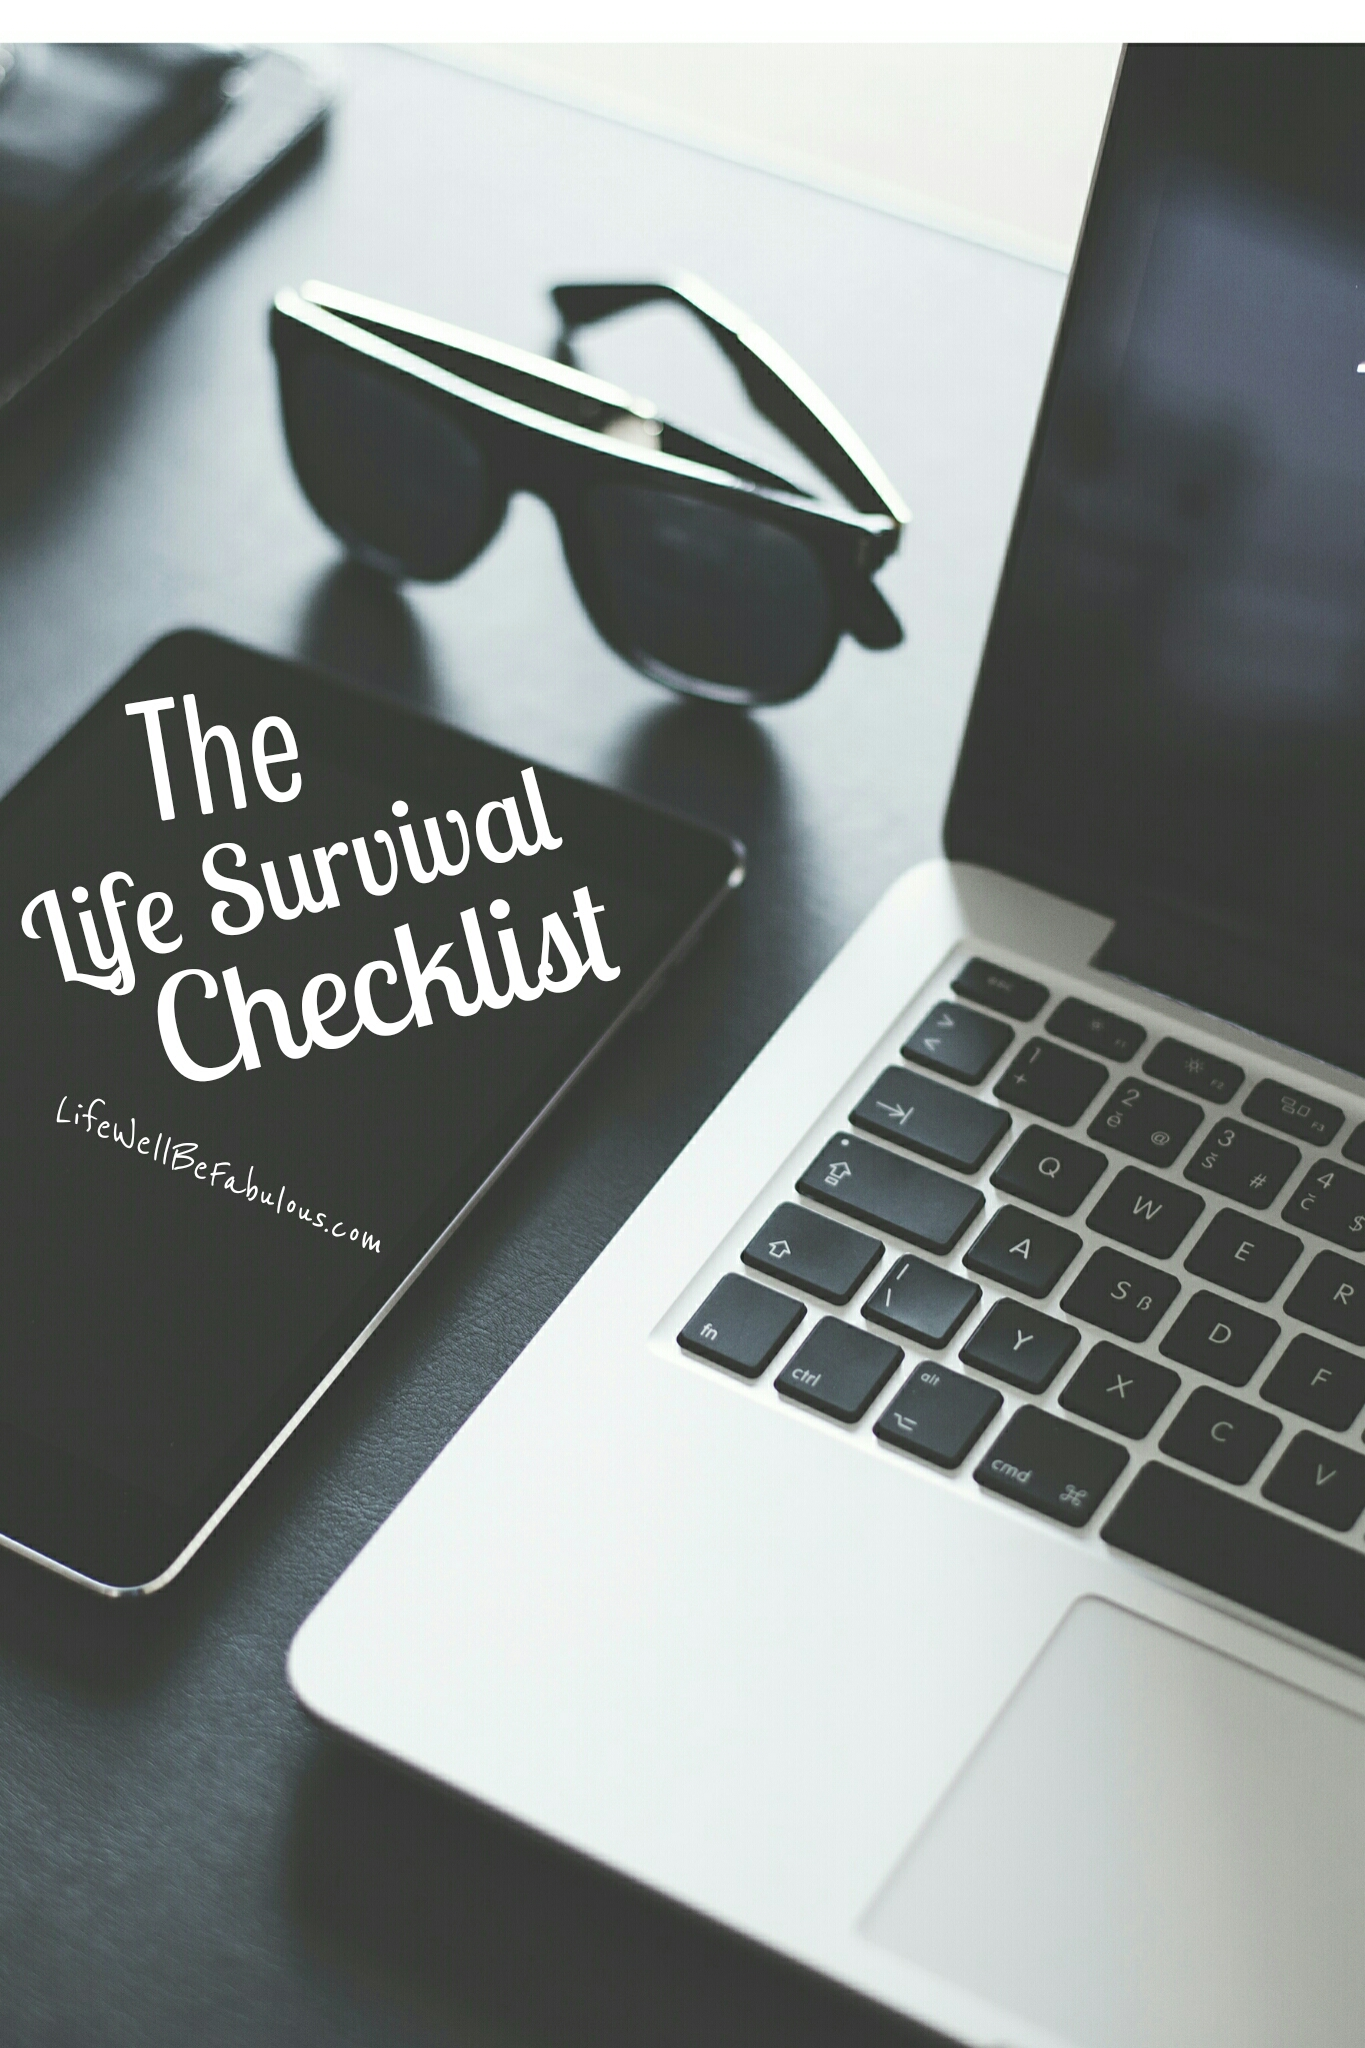 The-Life-Survival-checklist-March-2016-Two-LiWBF